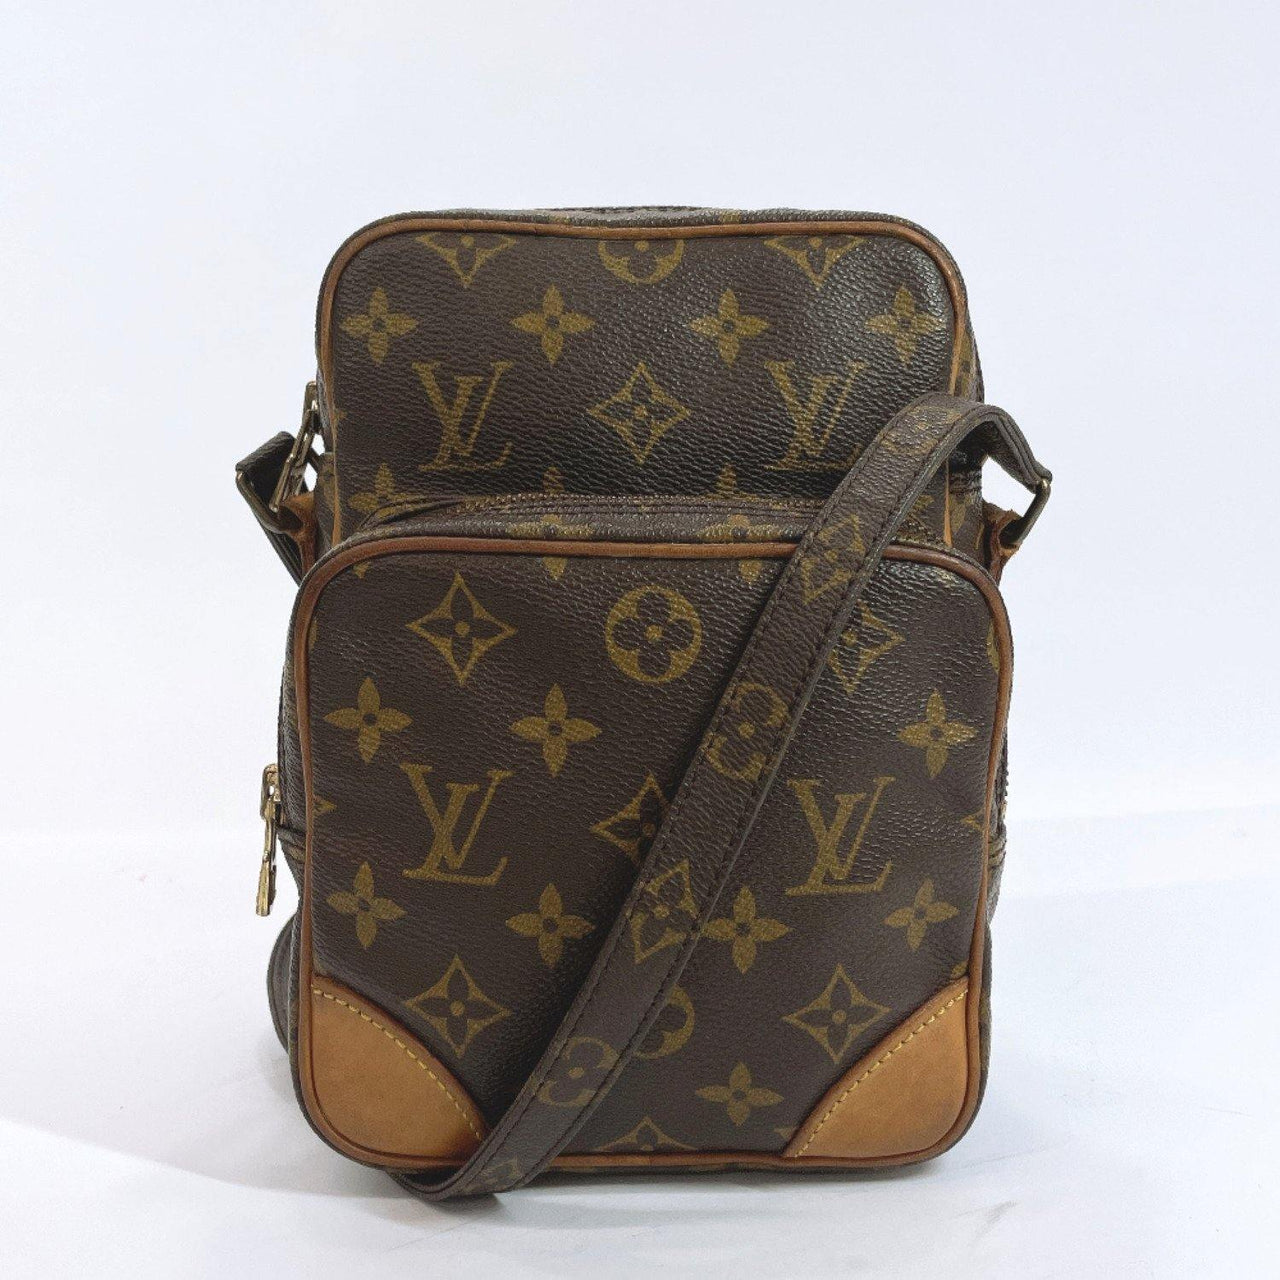 LOUIS VUITTON Shoulder Bag M45236 Amazon Monogram canvas Brown Women Used